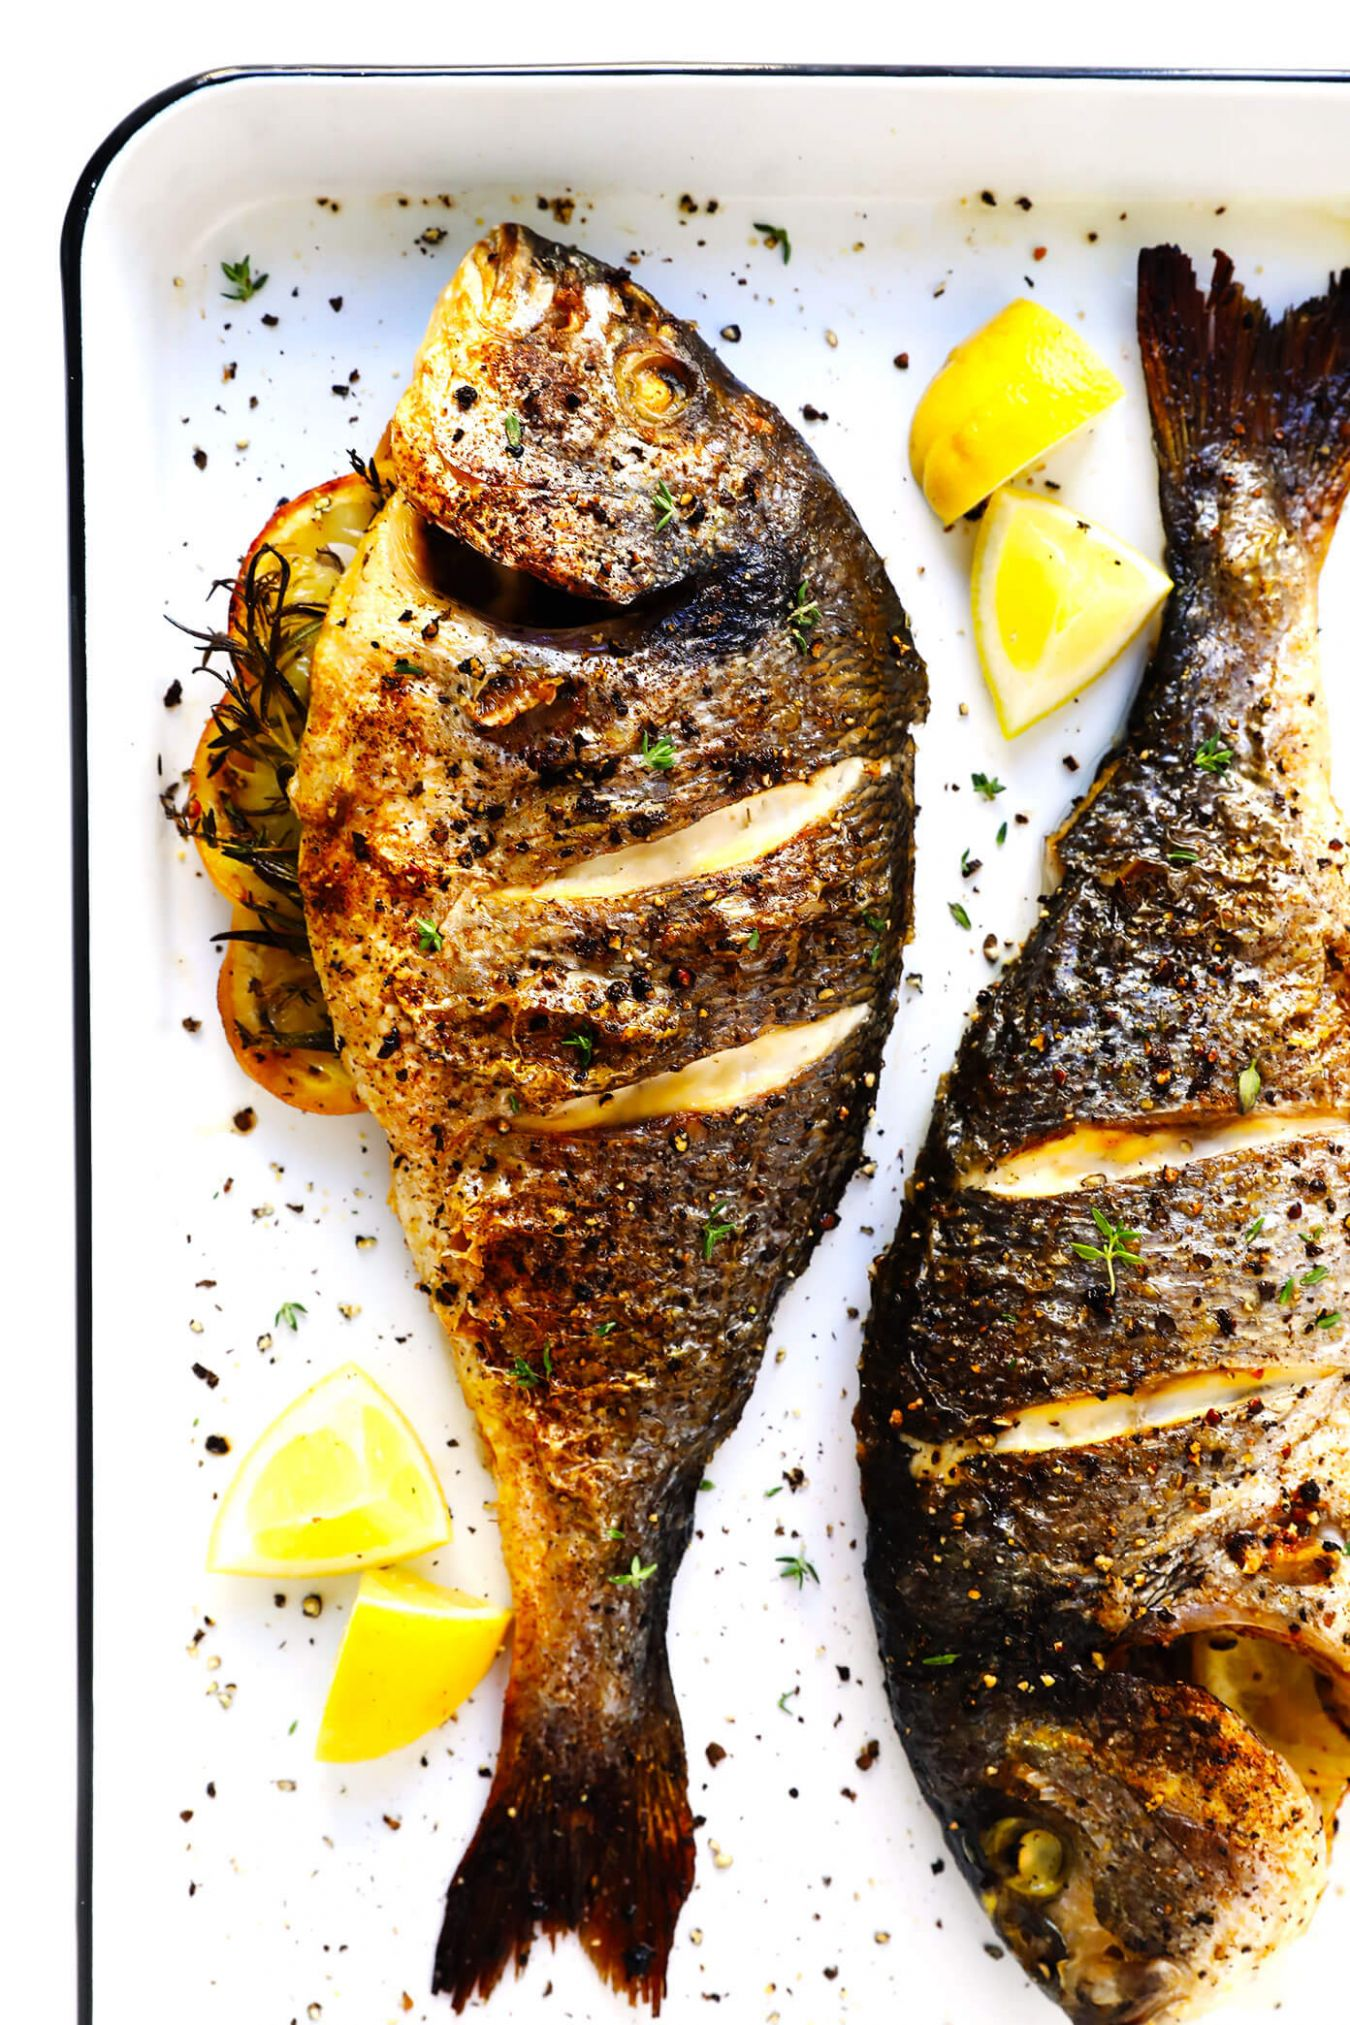 How To Cook A Whole Fish - Recipes Cooking Fish